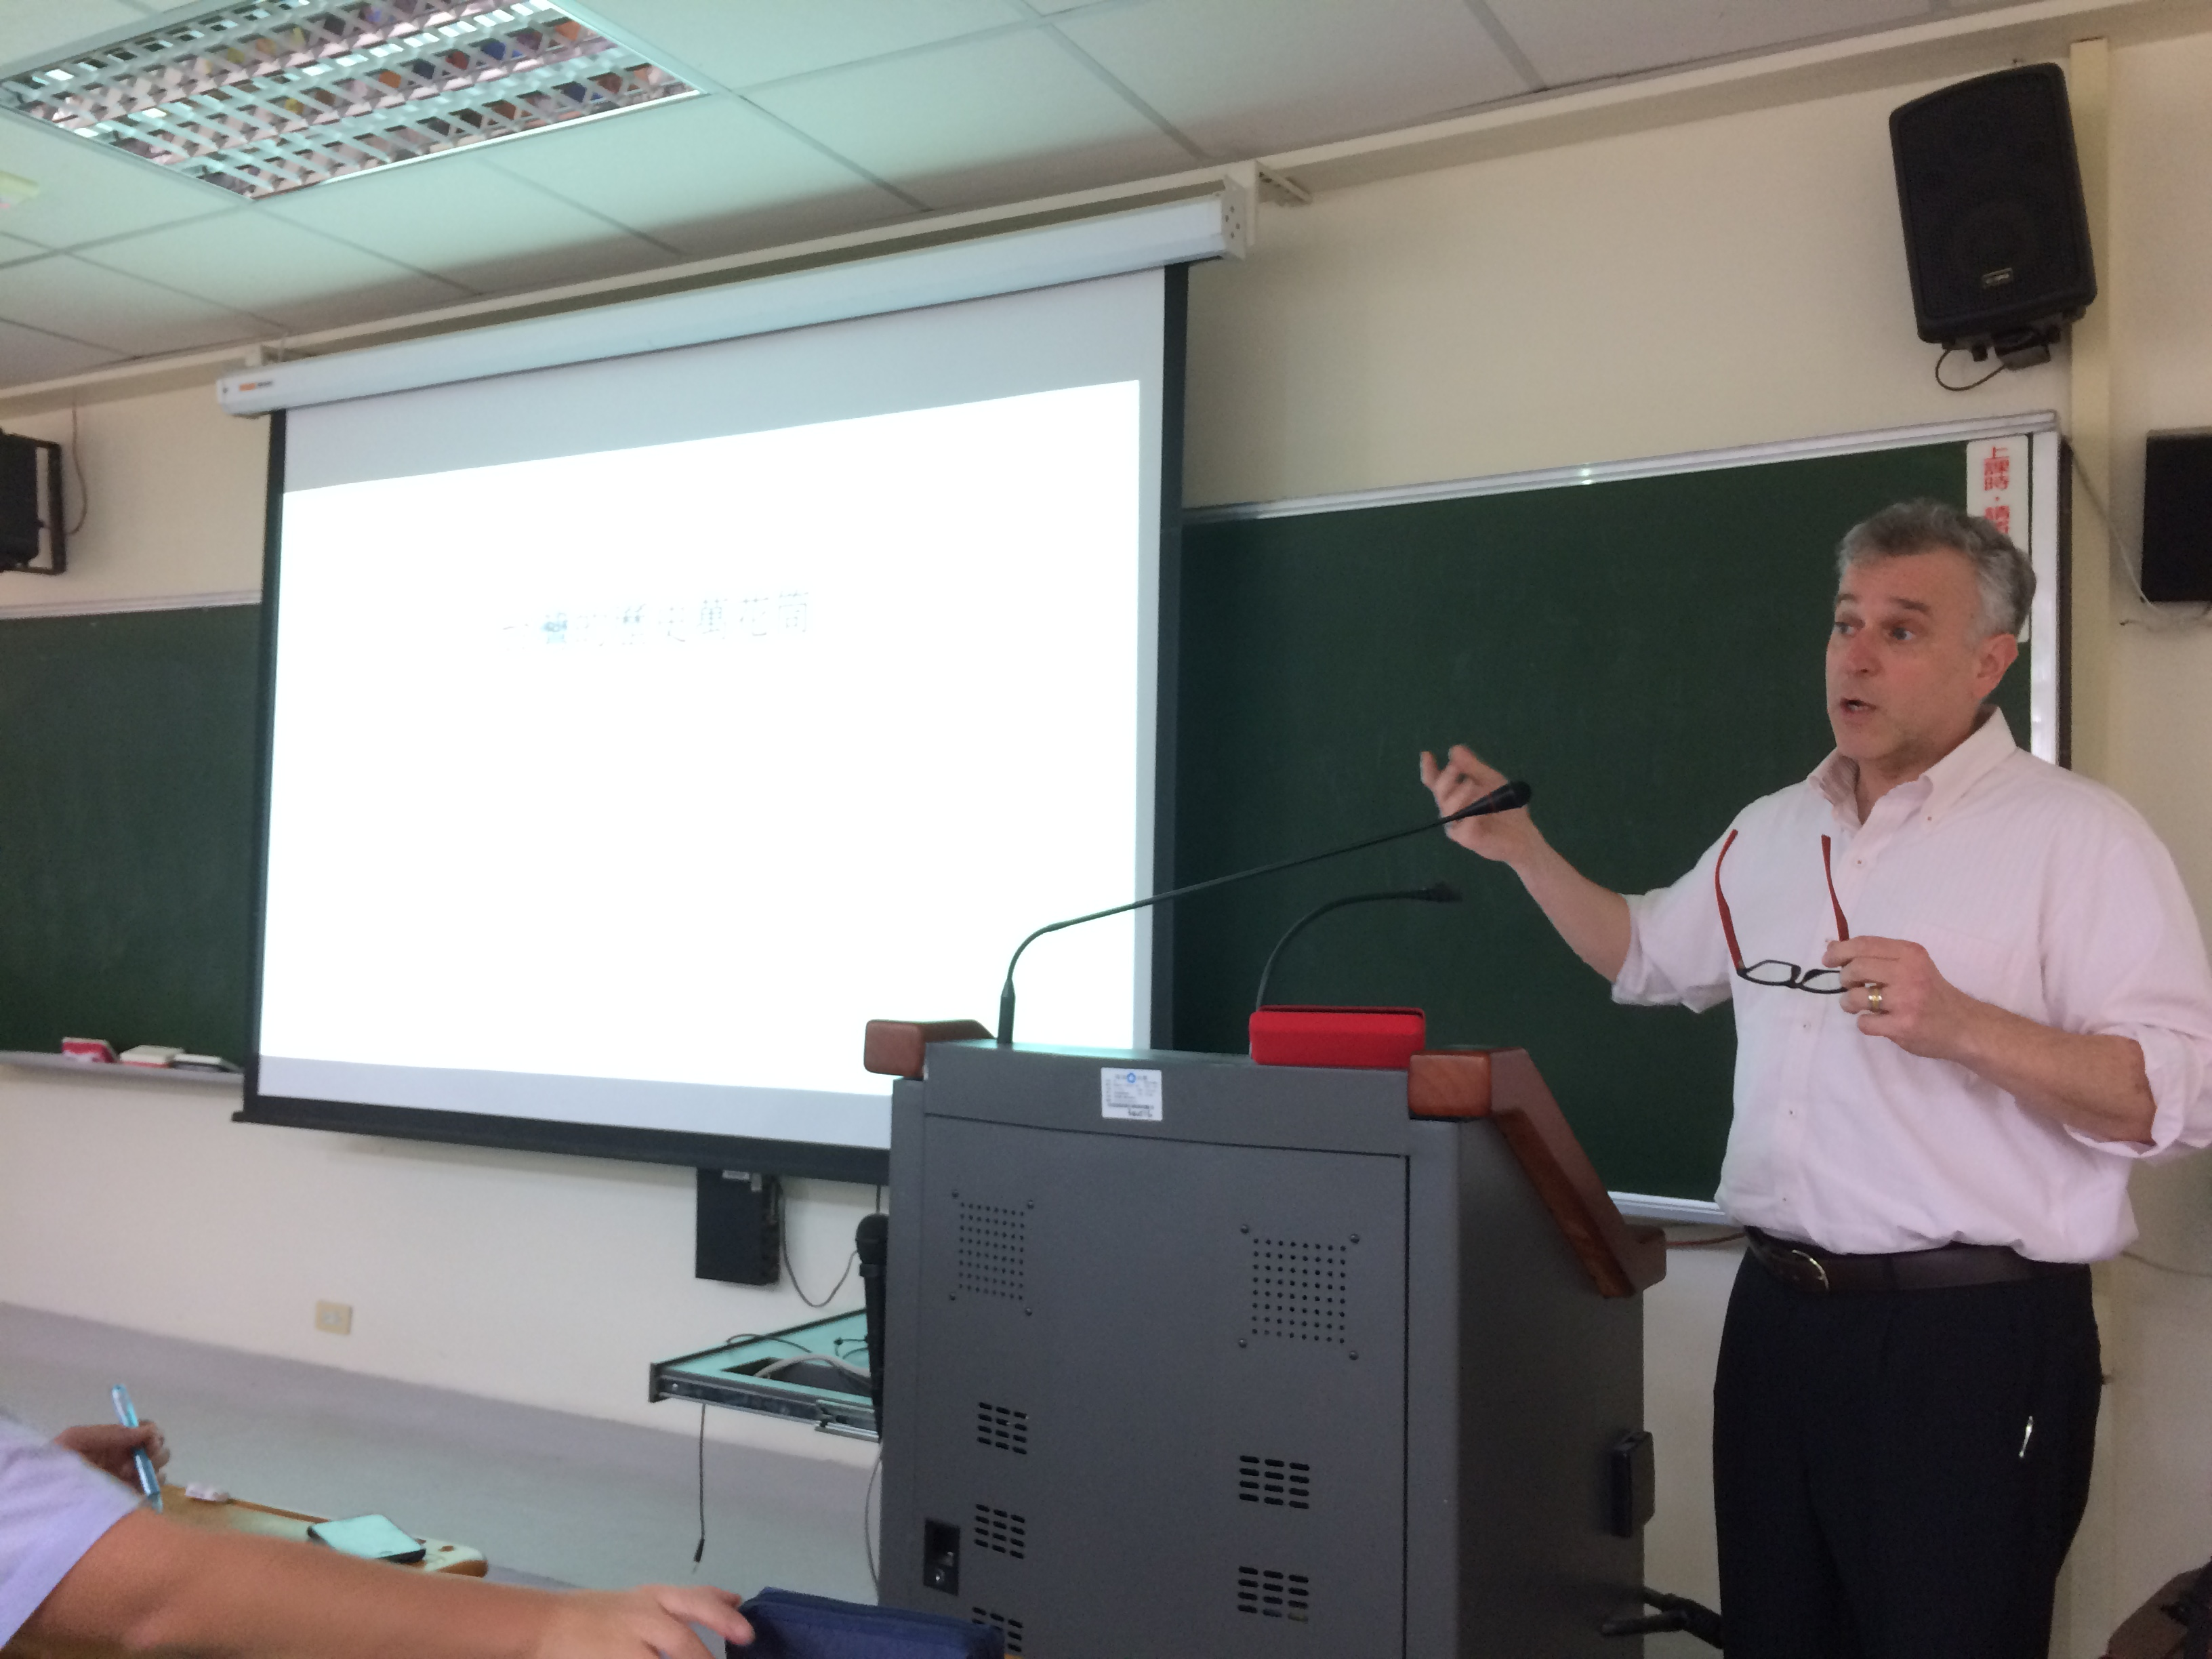 Professor Barak Kushner gives talks in Taiwan at National Chengchi University (國立政治大學)